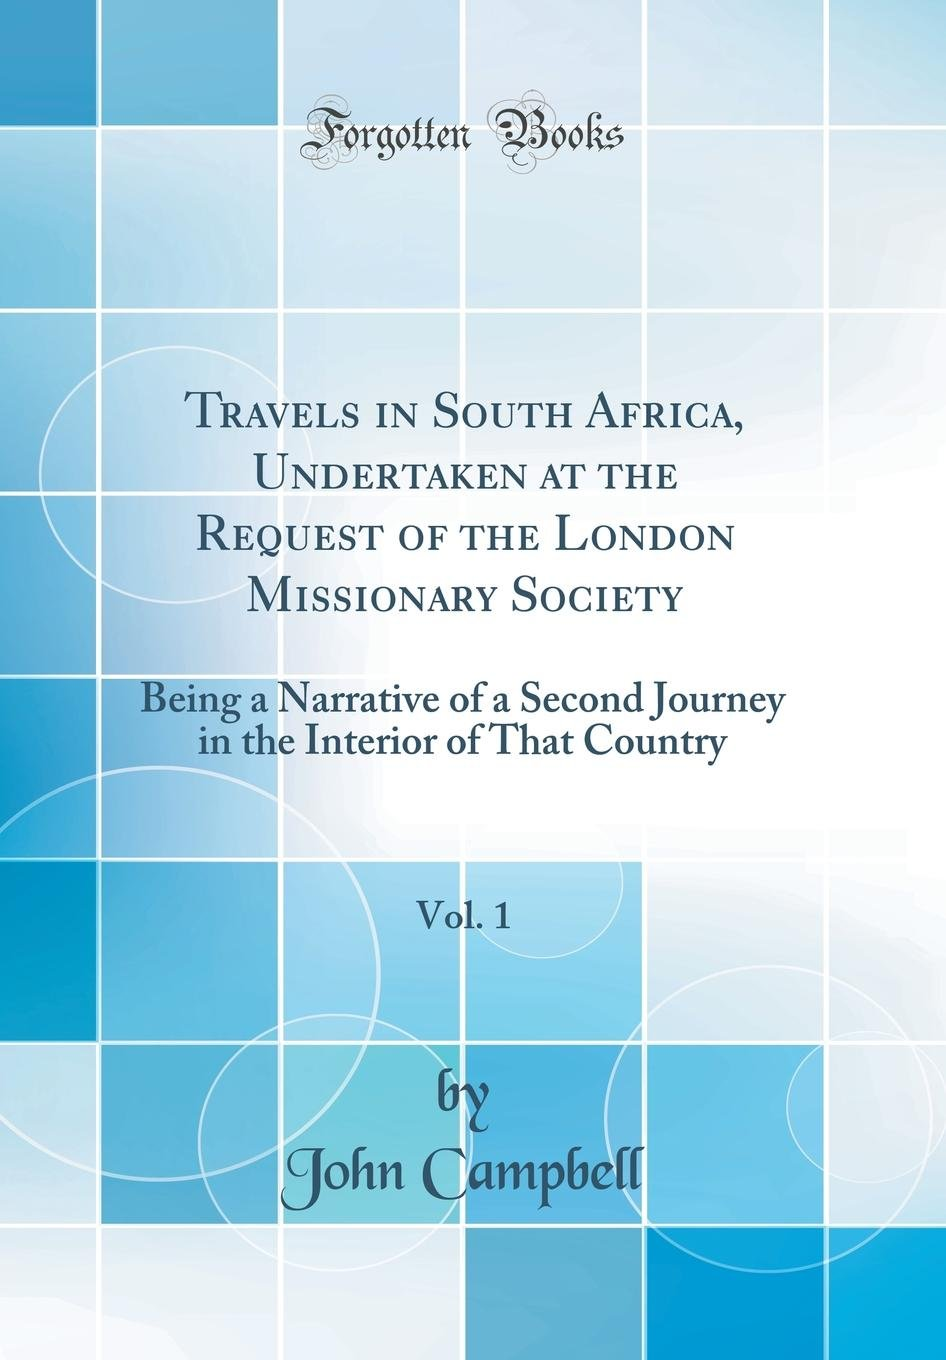 Read Online Travels in South Africa, Undertaken at the Request of the London Missionary Society, Vol. 1: Being a Narrative of a Second Journey in the Interior of That Country (Classic Reprint) pdf